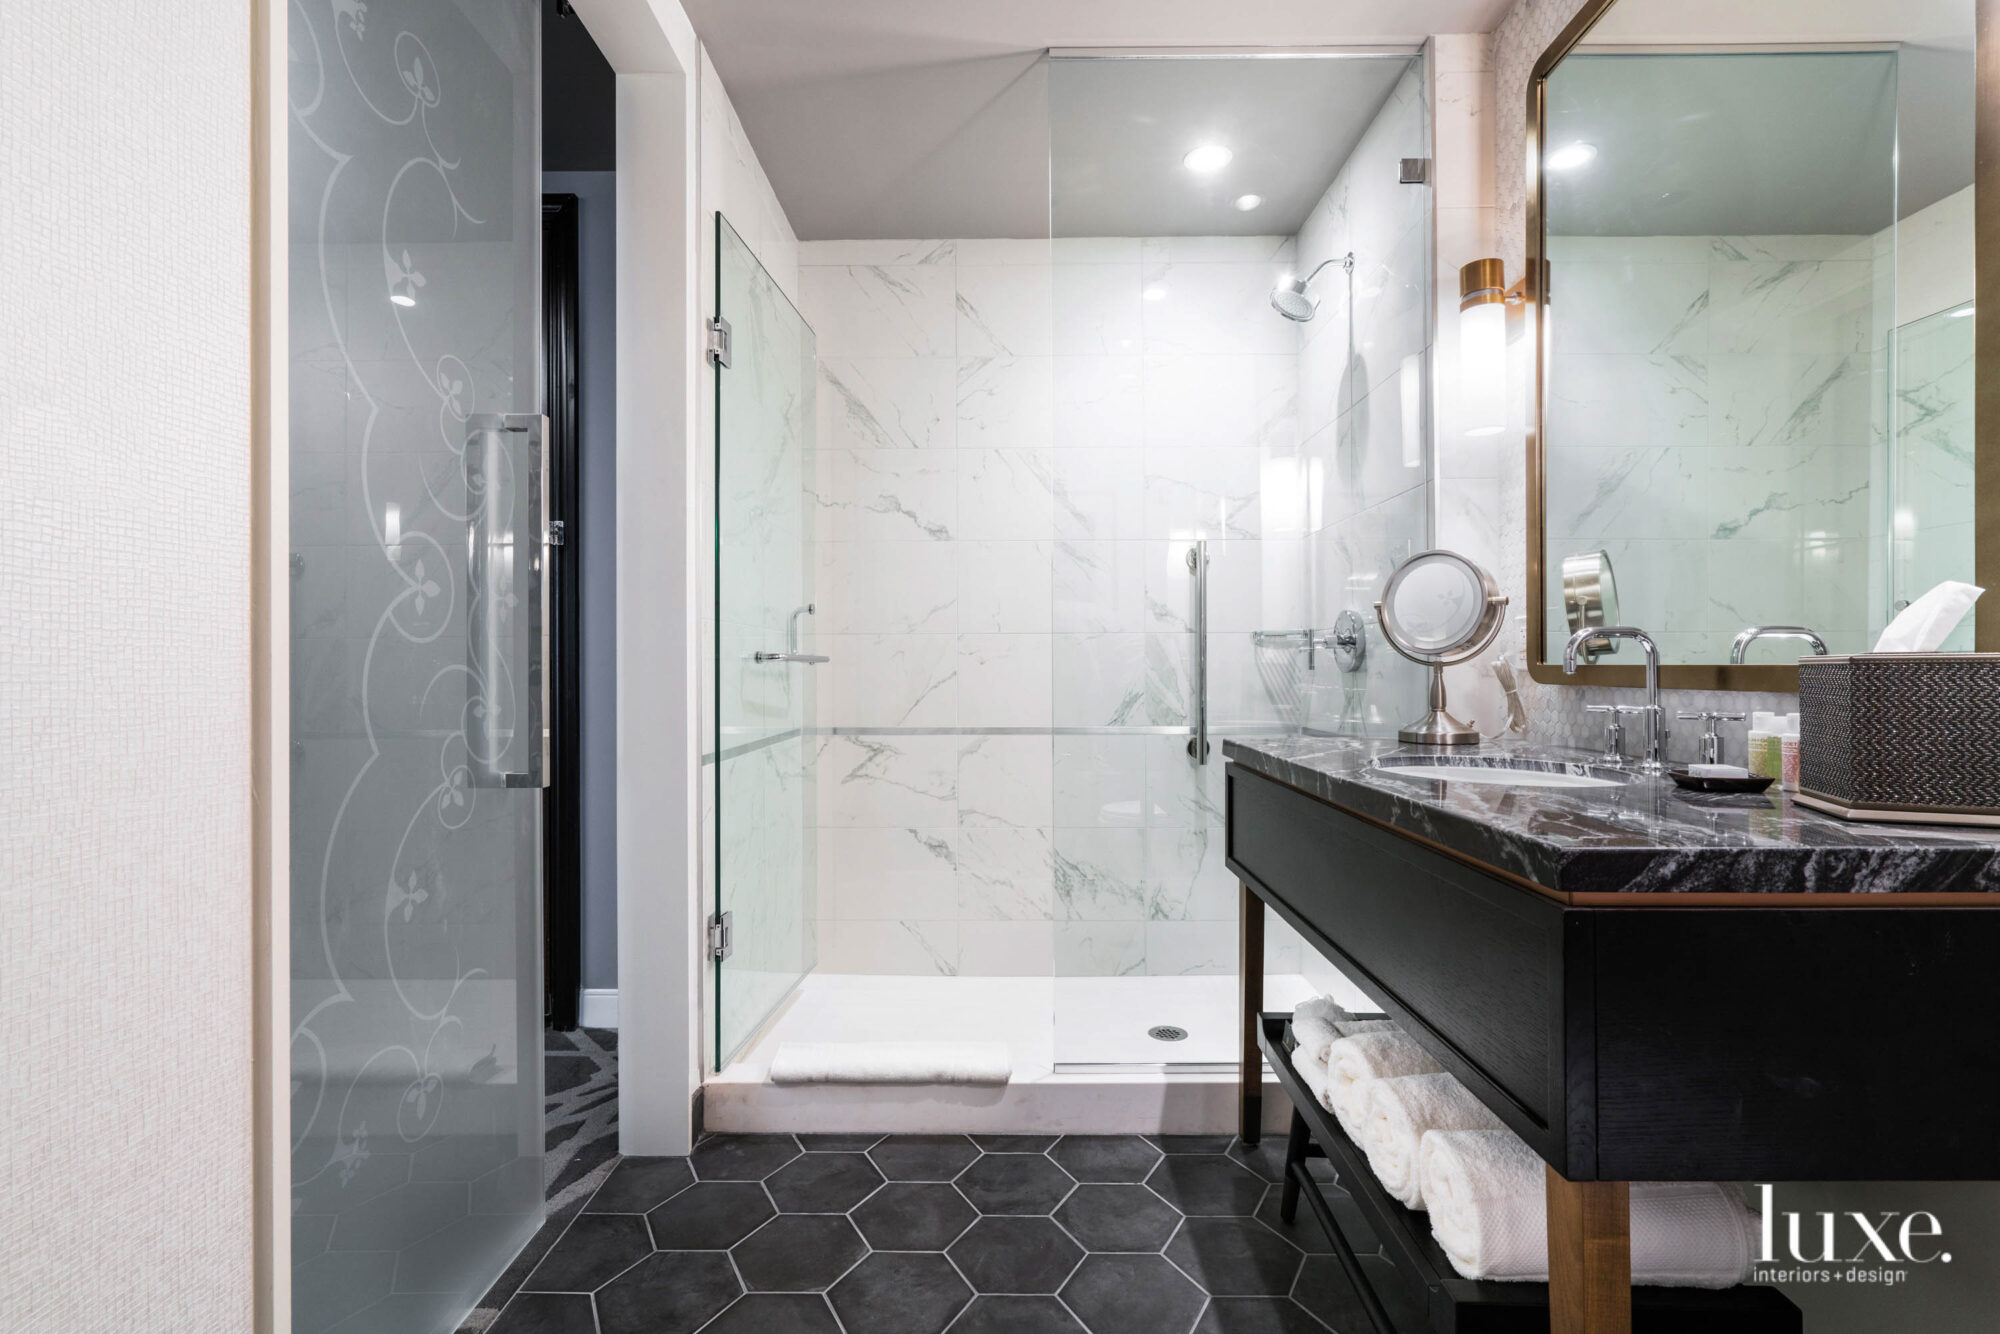 A gleaming bathroom with a marble countertop and a hexagonal tiled floor.